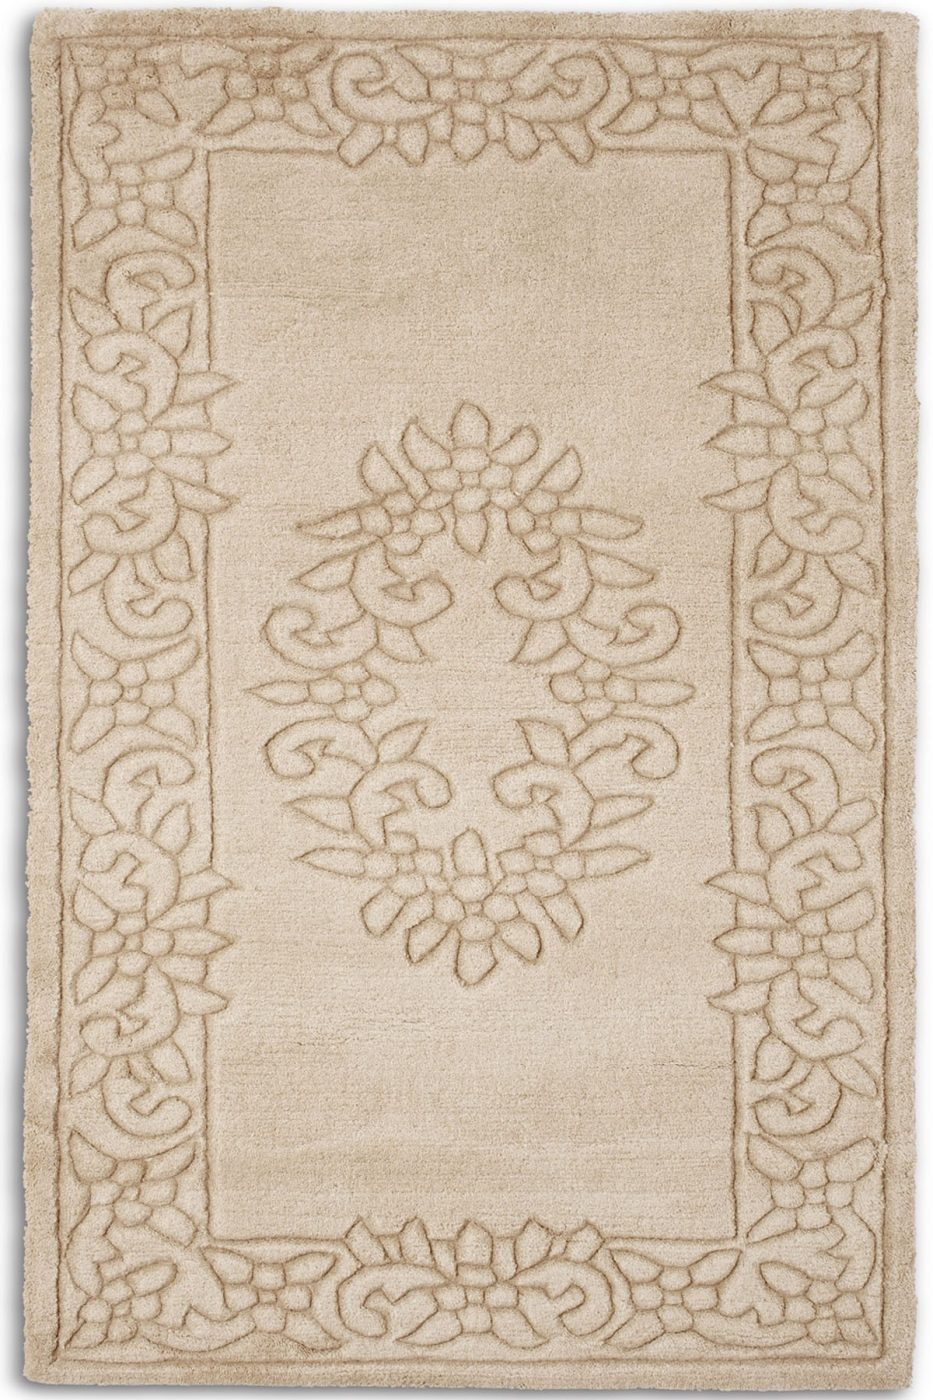 Royale ROY12 | Plantation Rug Company | Best at Flooring